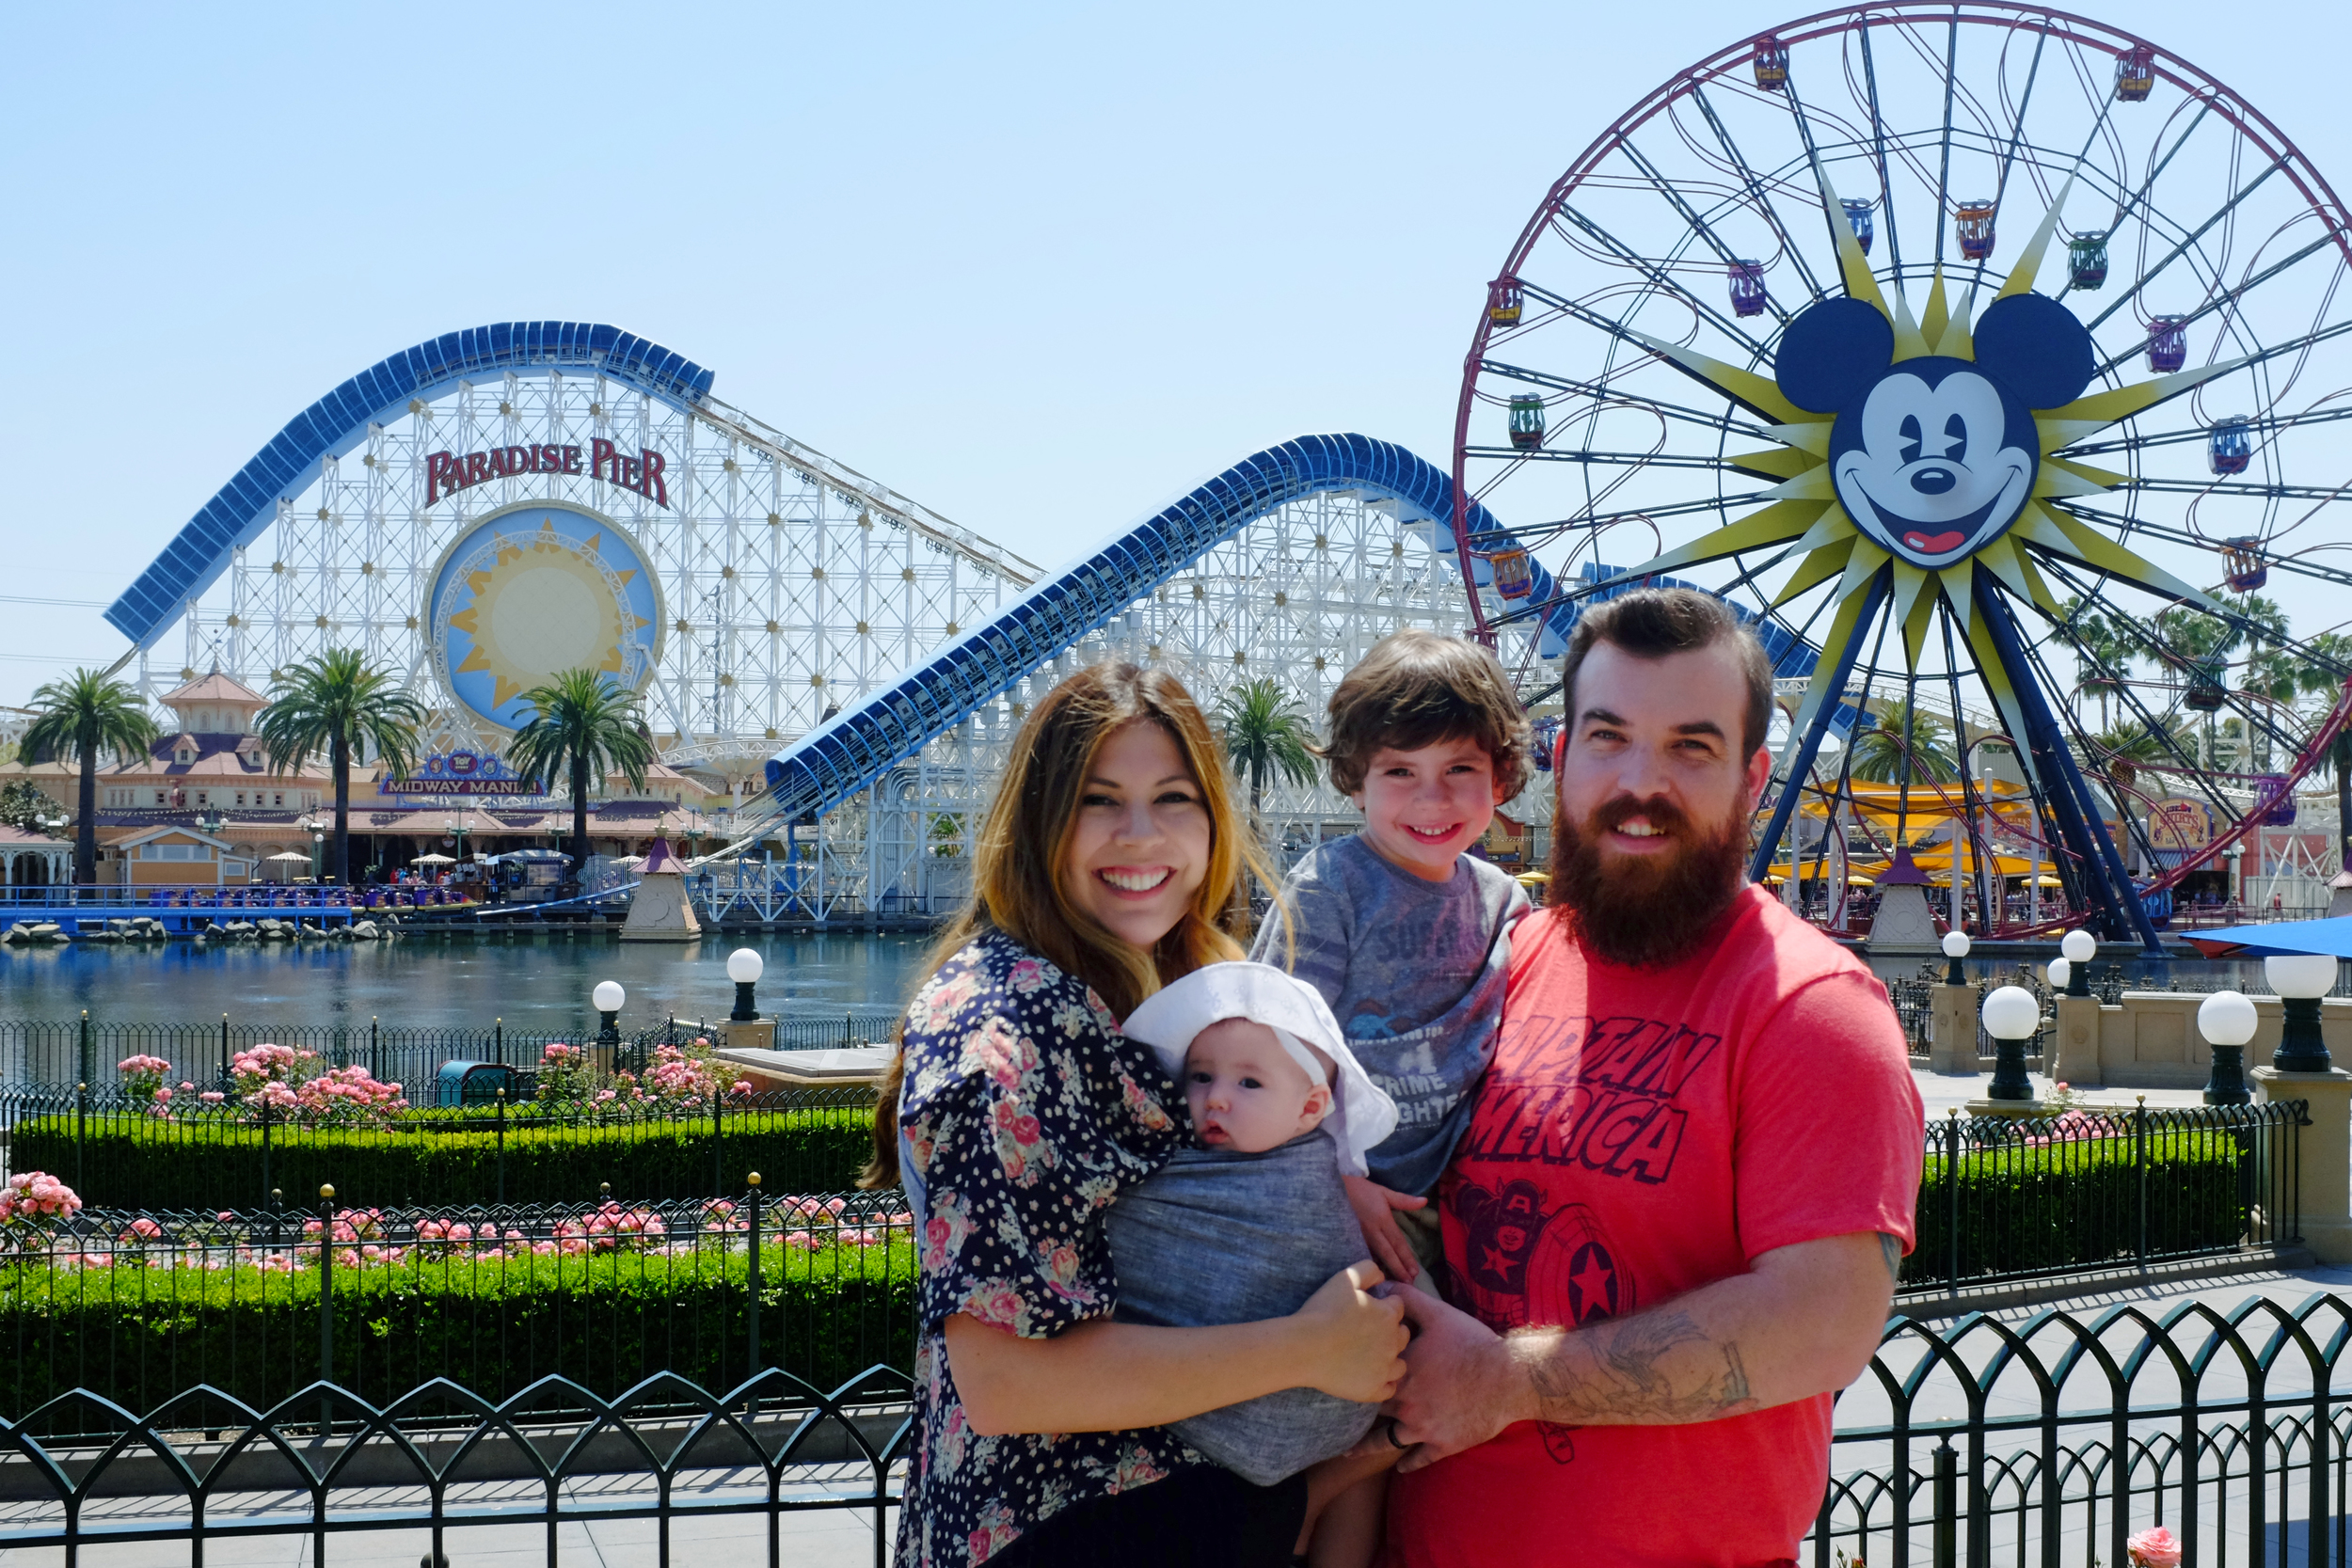 Stopped for a quick family photo in front of the boardwalk. The employee that took this photo took the time to compose us and made a really nice family photo. Thanks man!